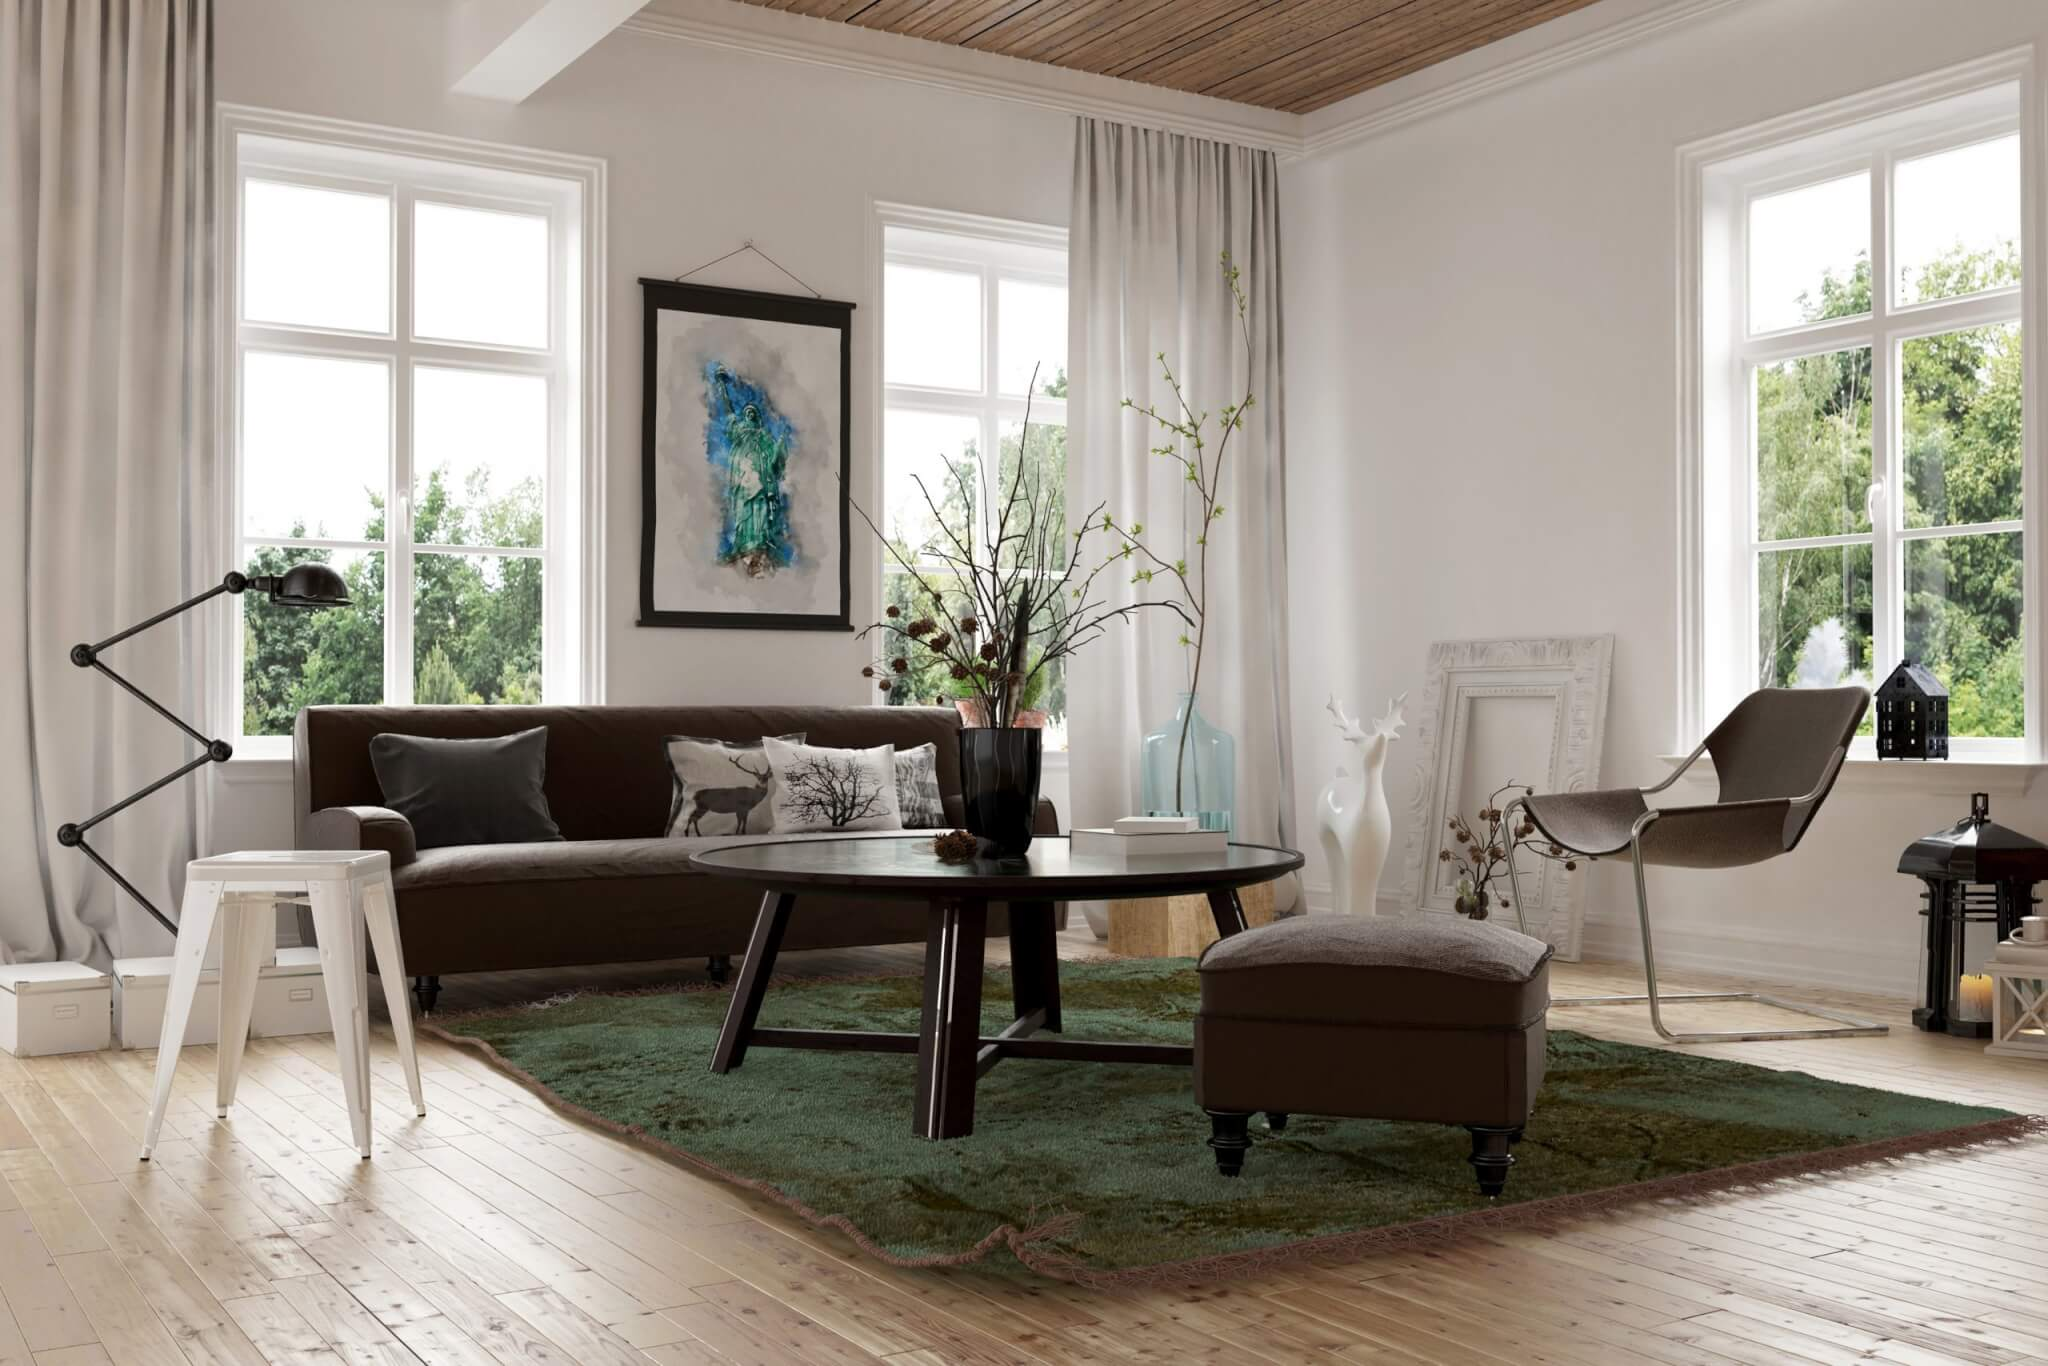 Lounge with Wooden Floor and Minimalistic Decor